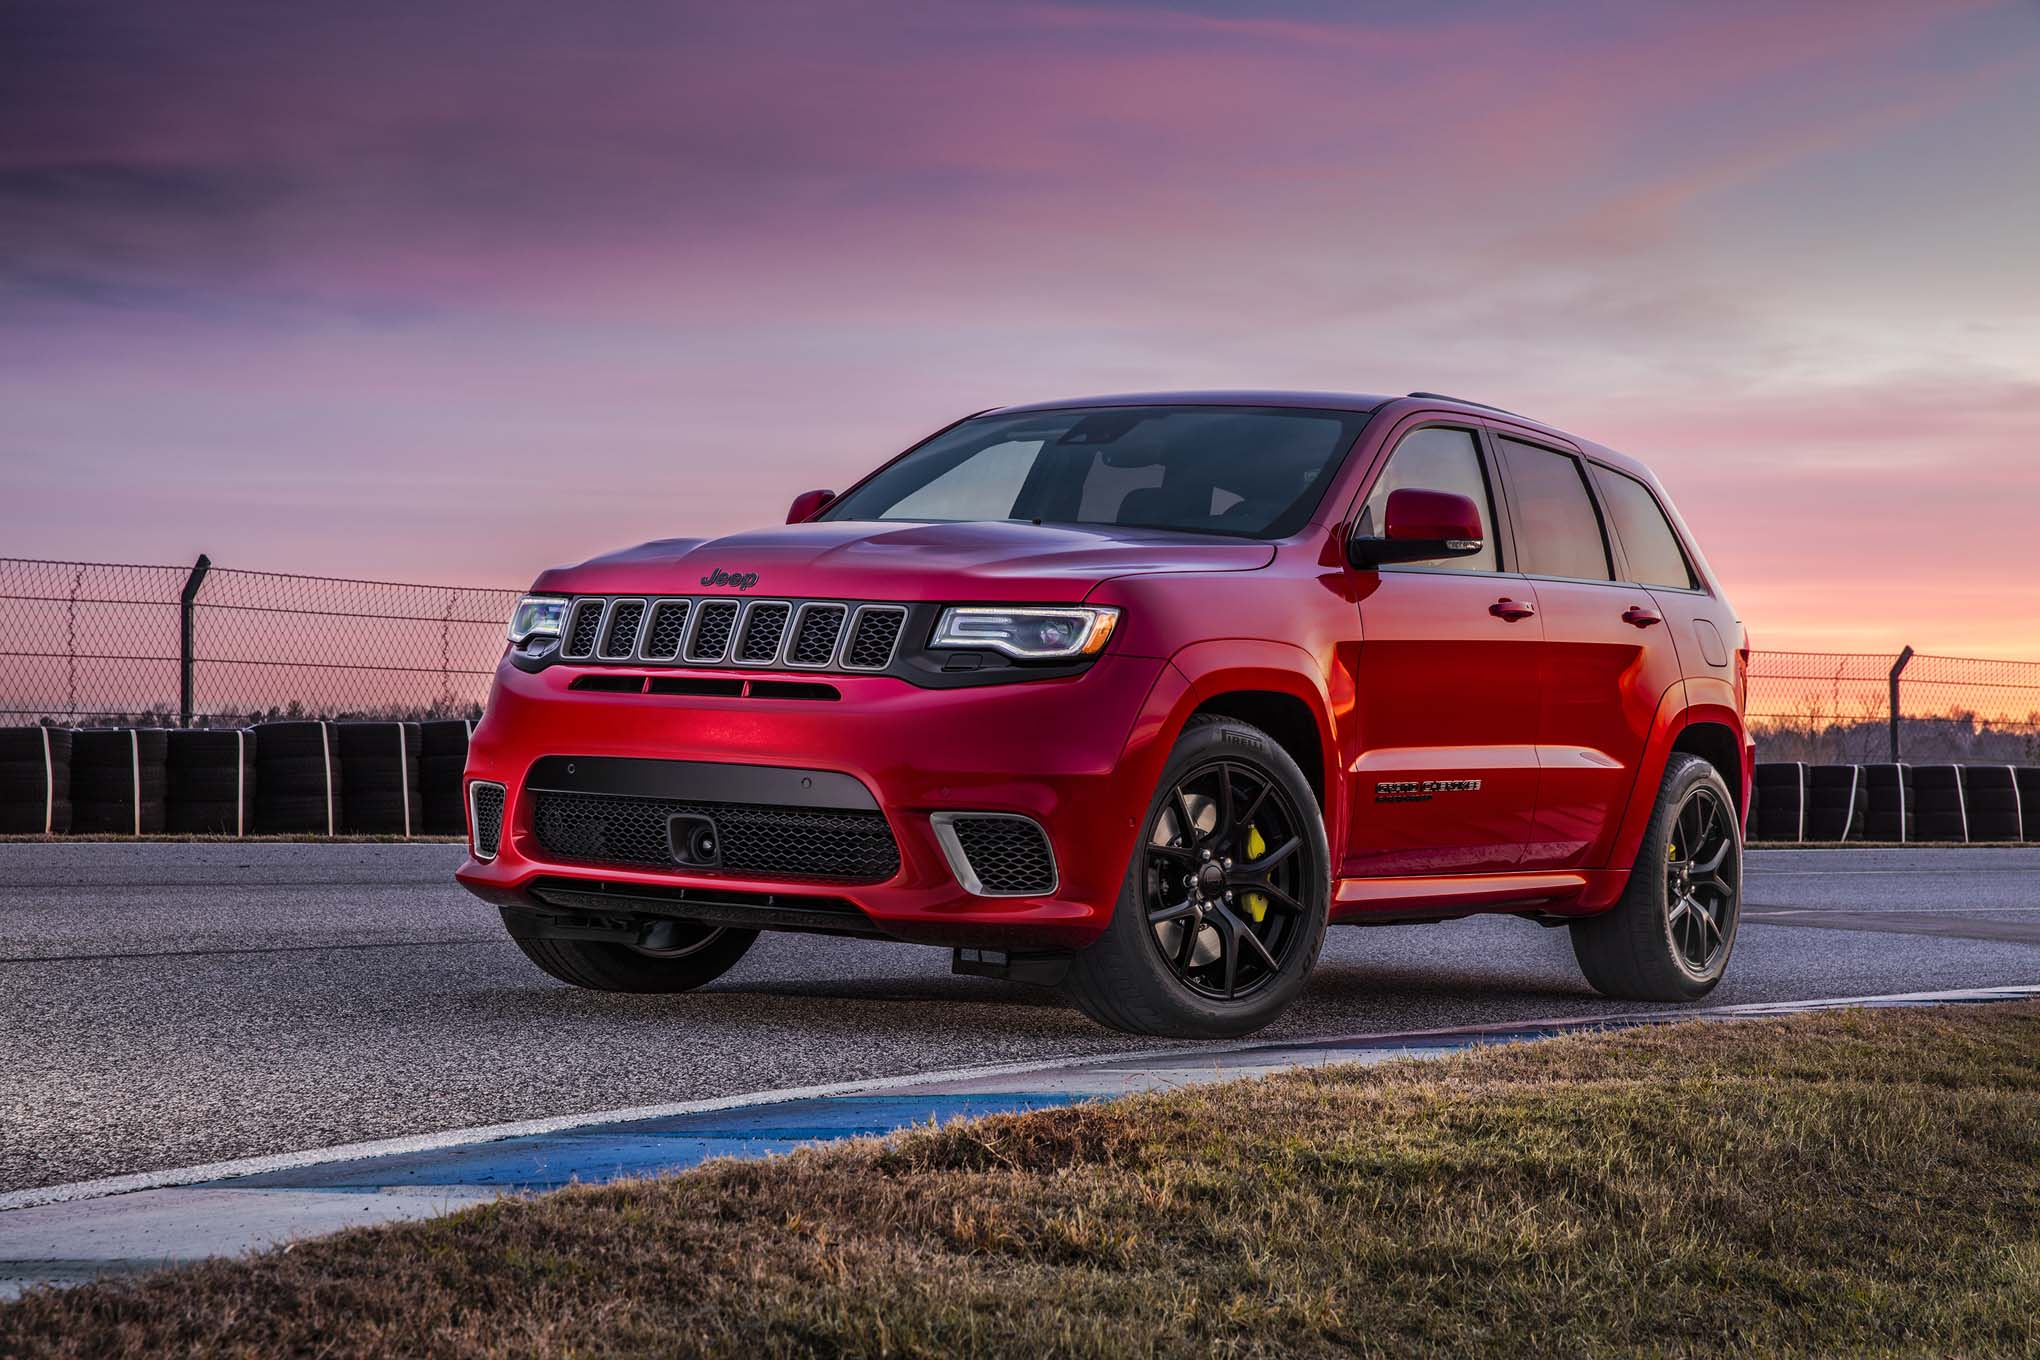 the 2018 jeep grand cherokee trackhawk costs almost 90k news. Black Bedroom Furniture Sets. Home Design Ideas